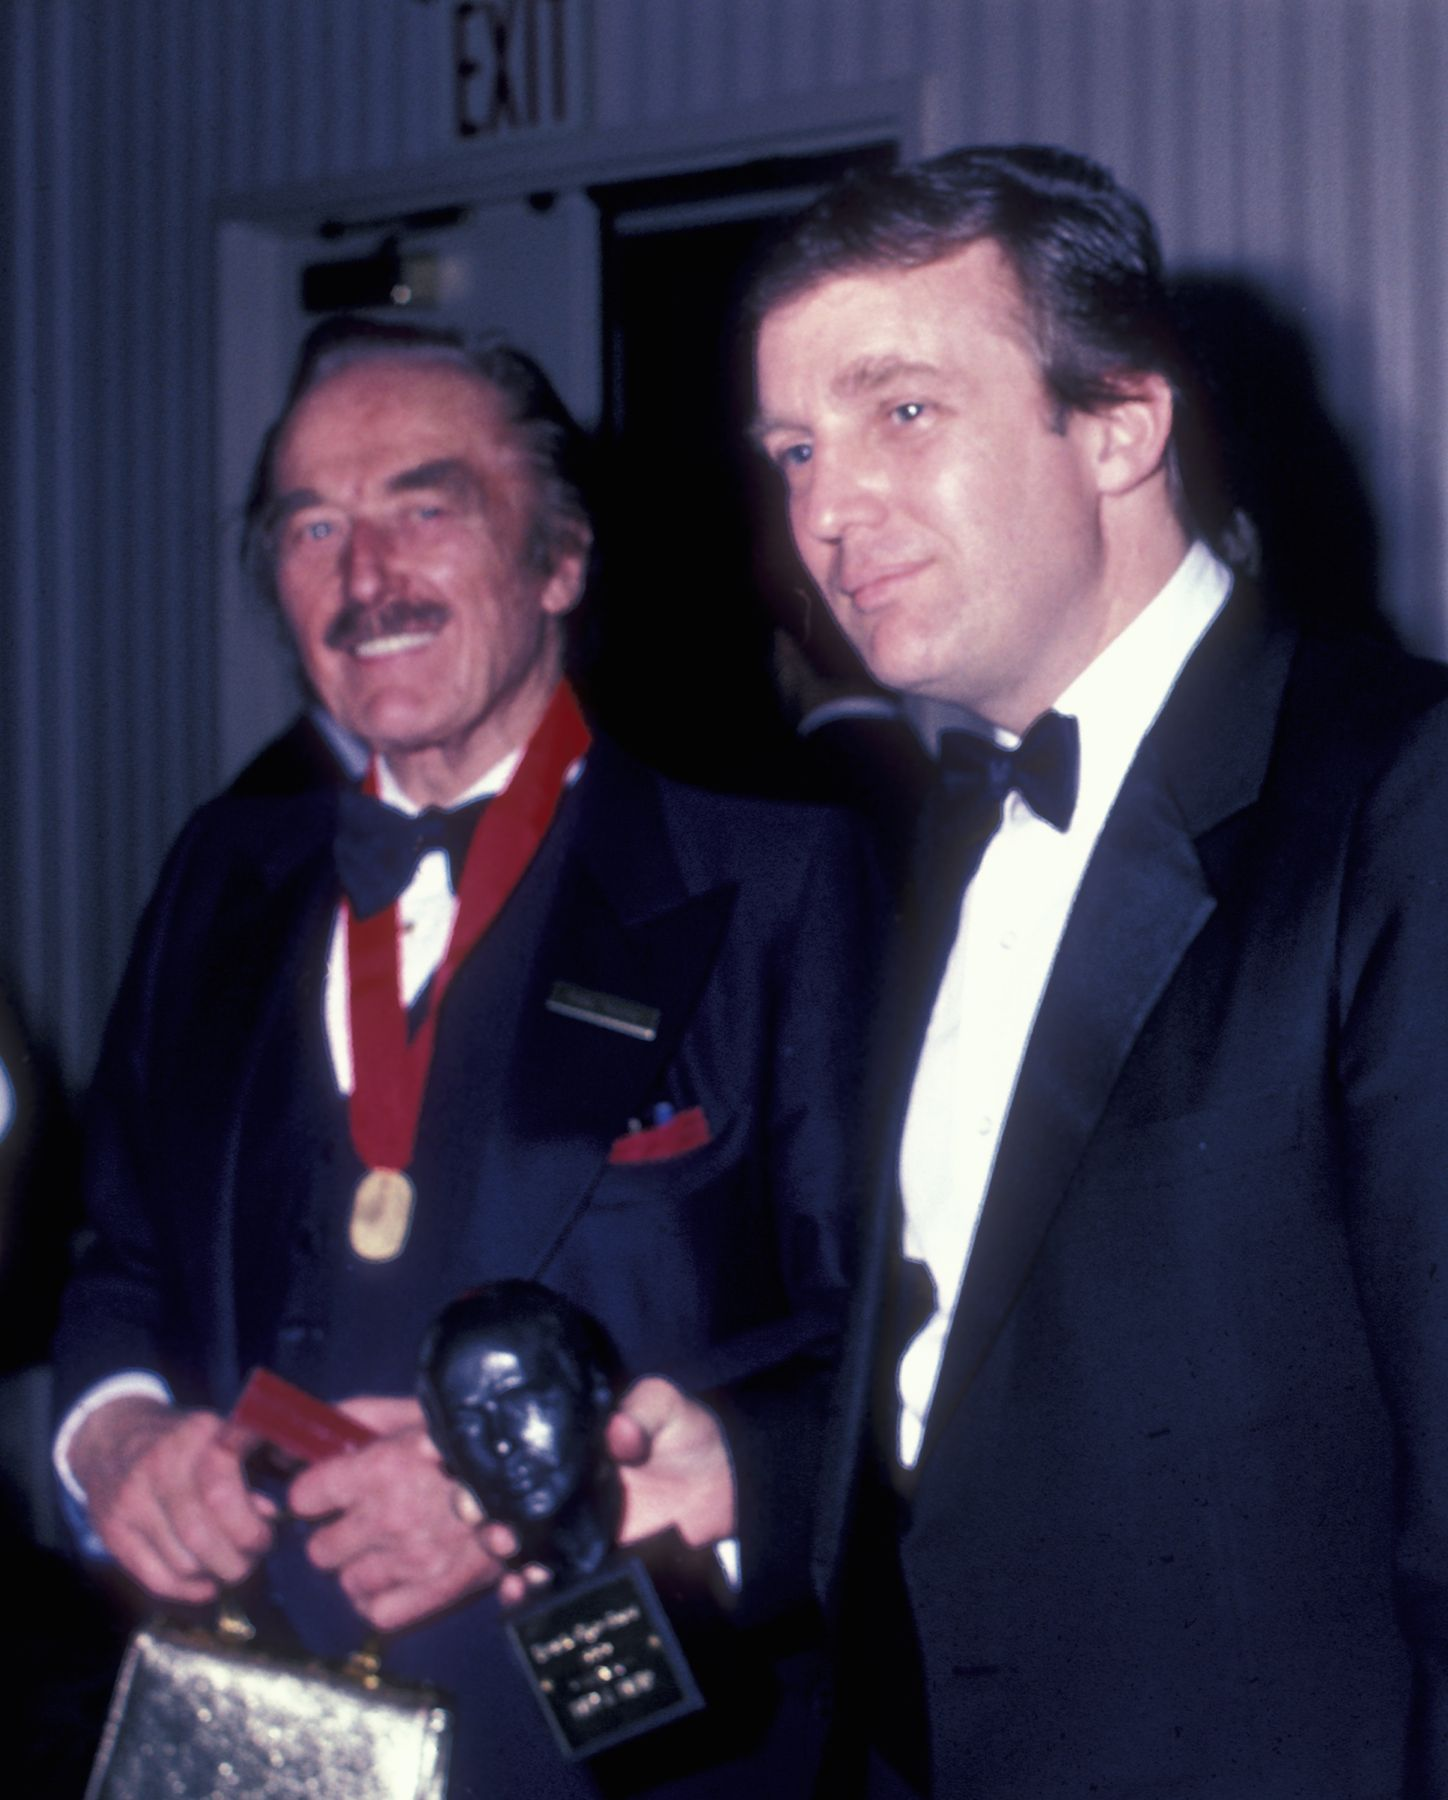 Image result for Was donald trump's grandfather half-Jewish?